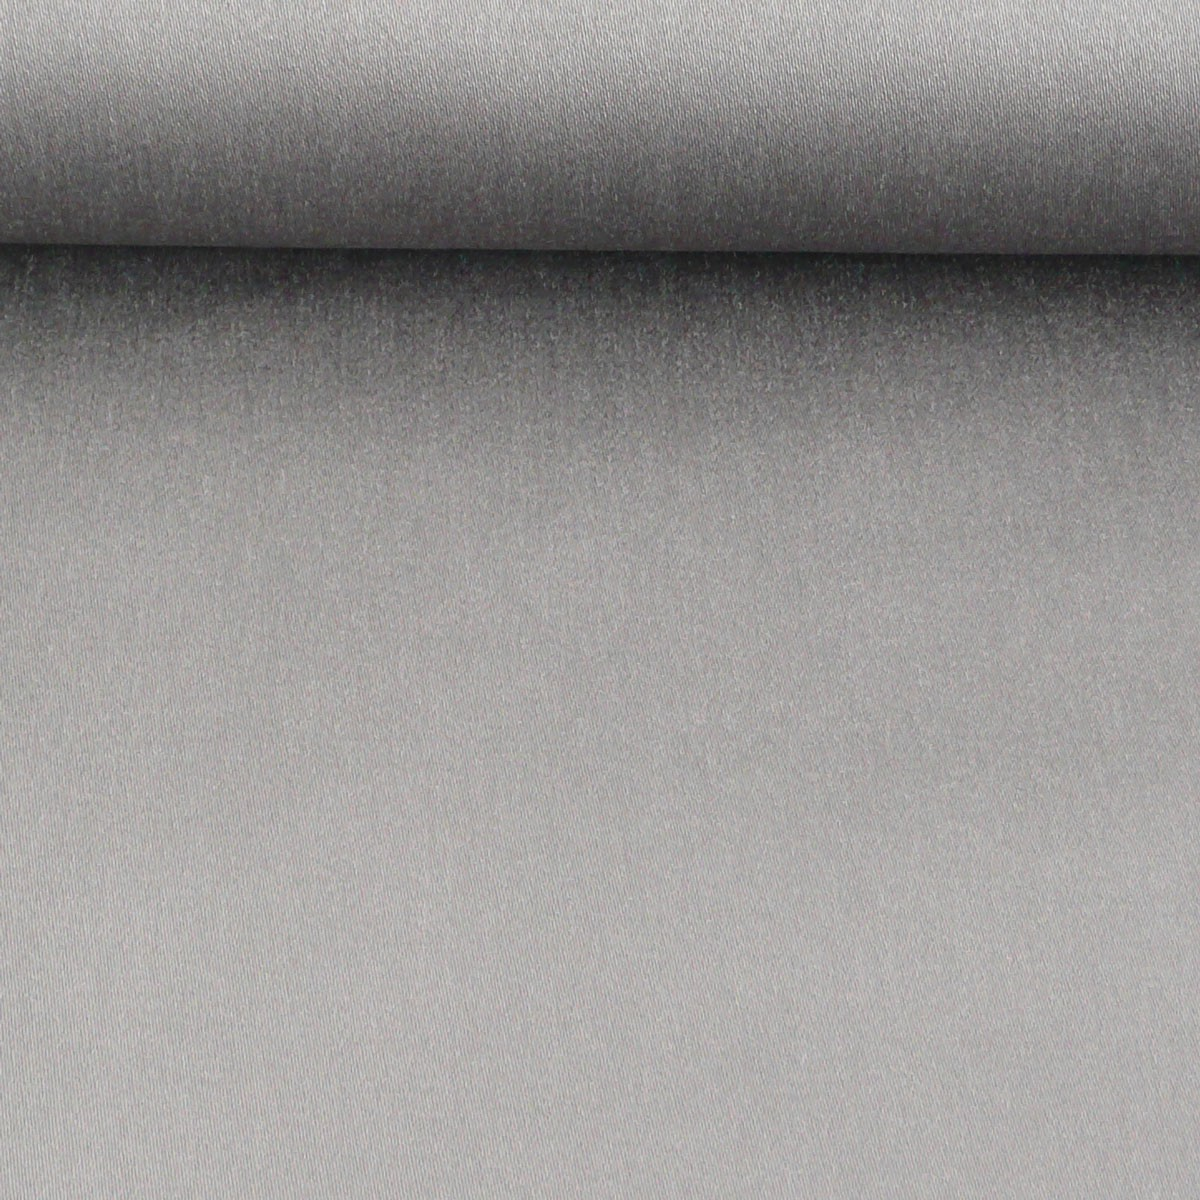 baumwolle stoff meterware baumwolle satin spandex dark grey 1 45m breite stoffe stoffe uni. Black Bedroom Furniture Sets. Home Design Ideas